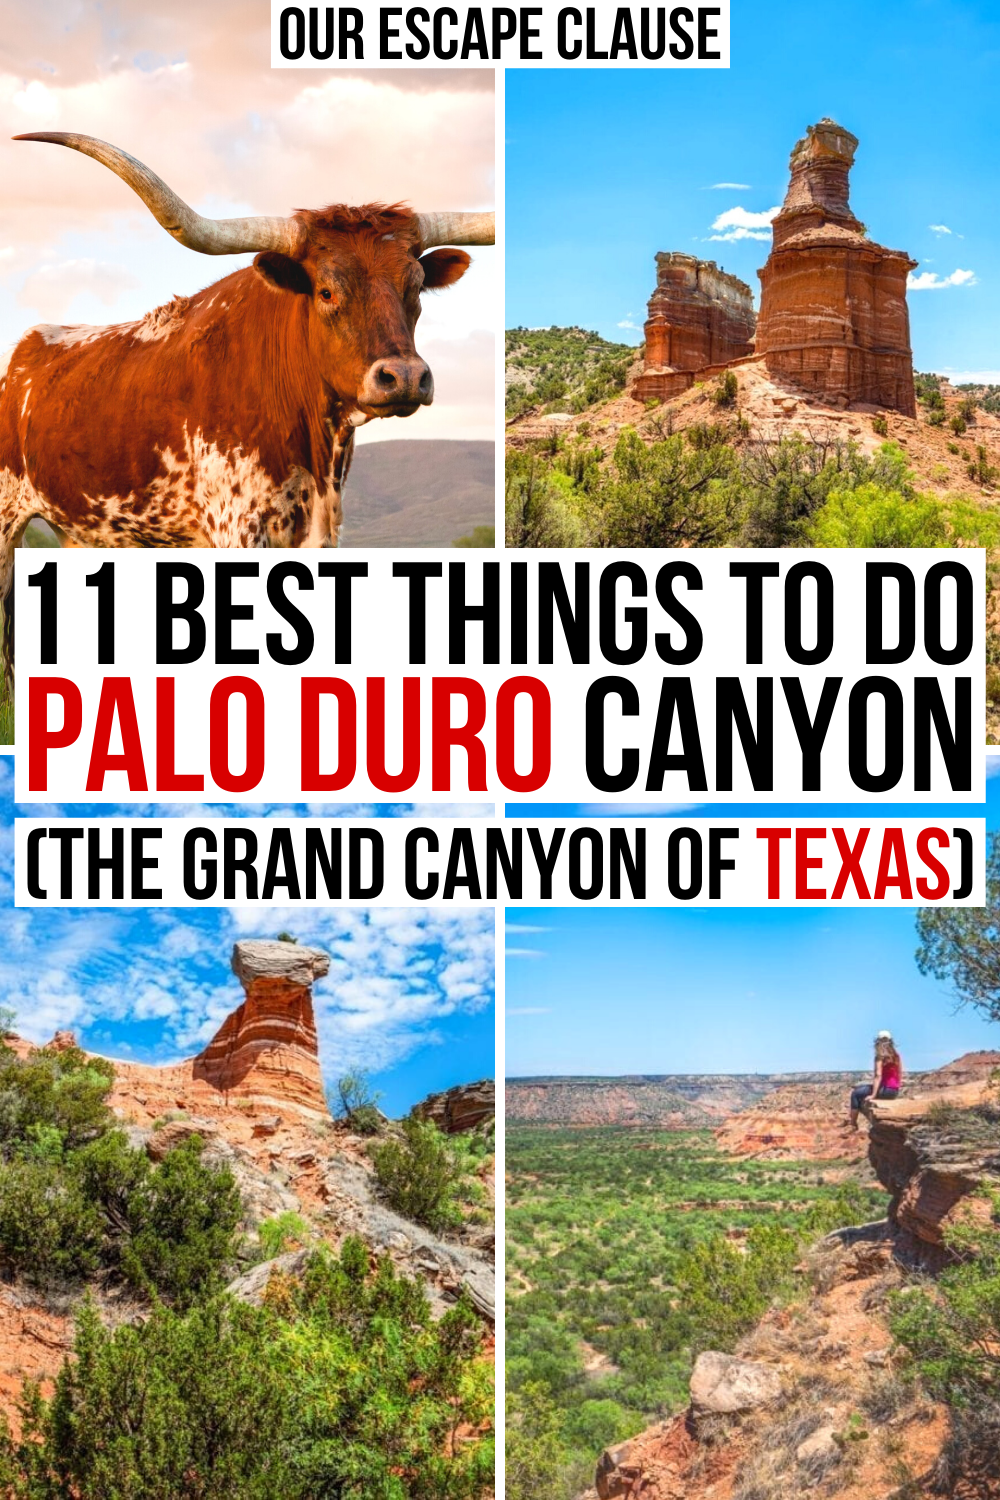 11 Best Things to Do in Palo Duro Canyon, Texas